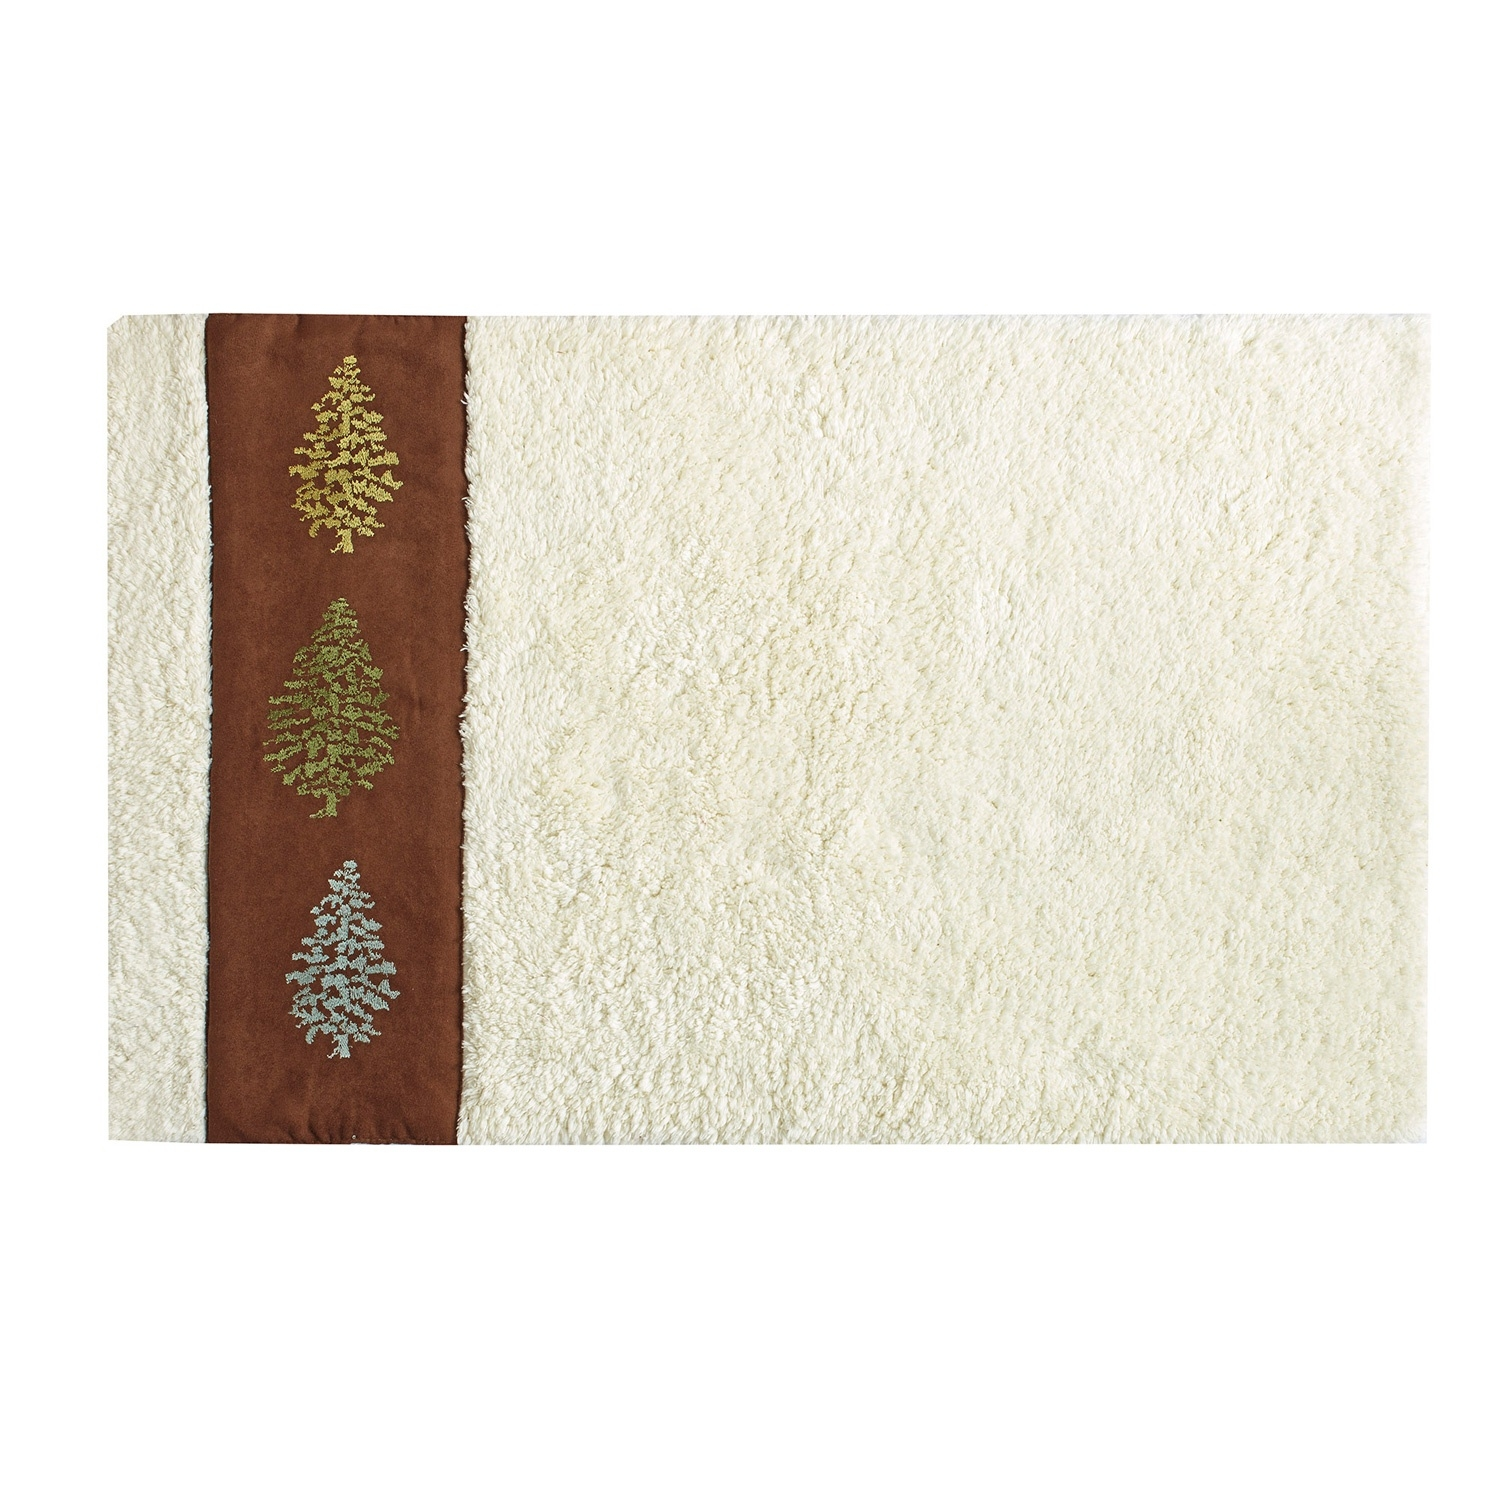 3×5 Bathroom Rugs